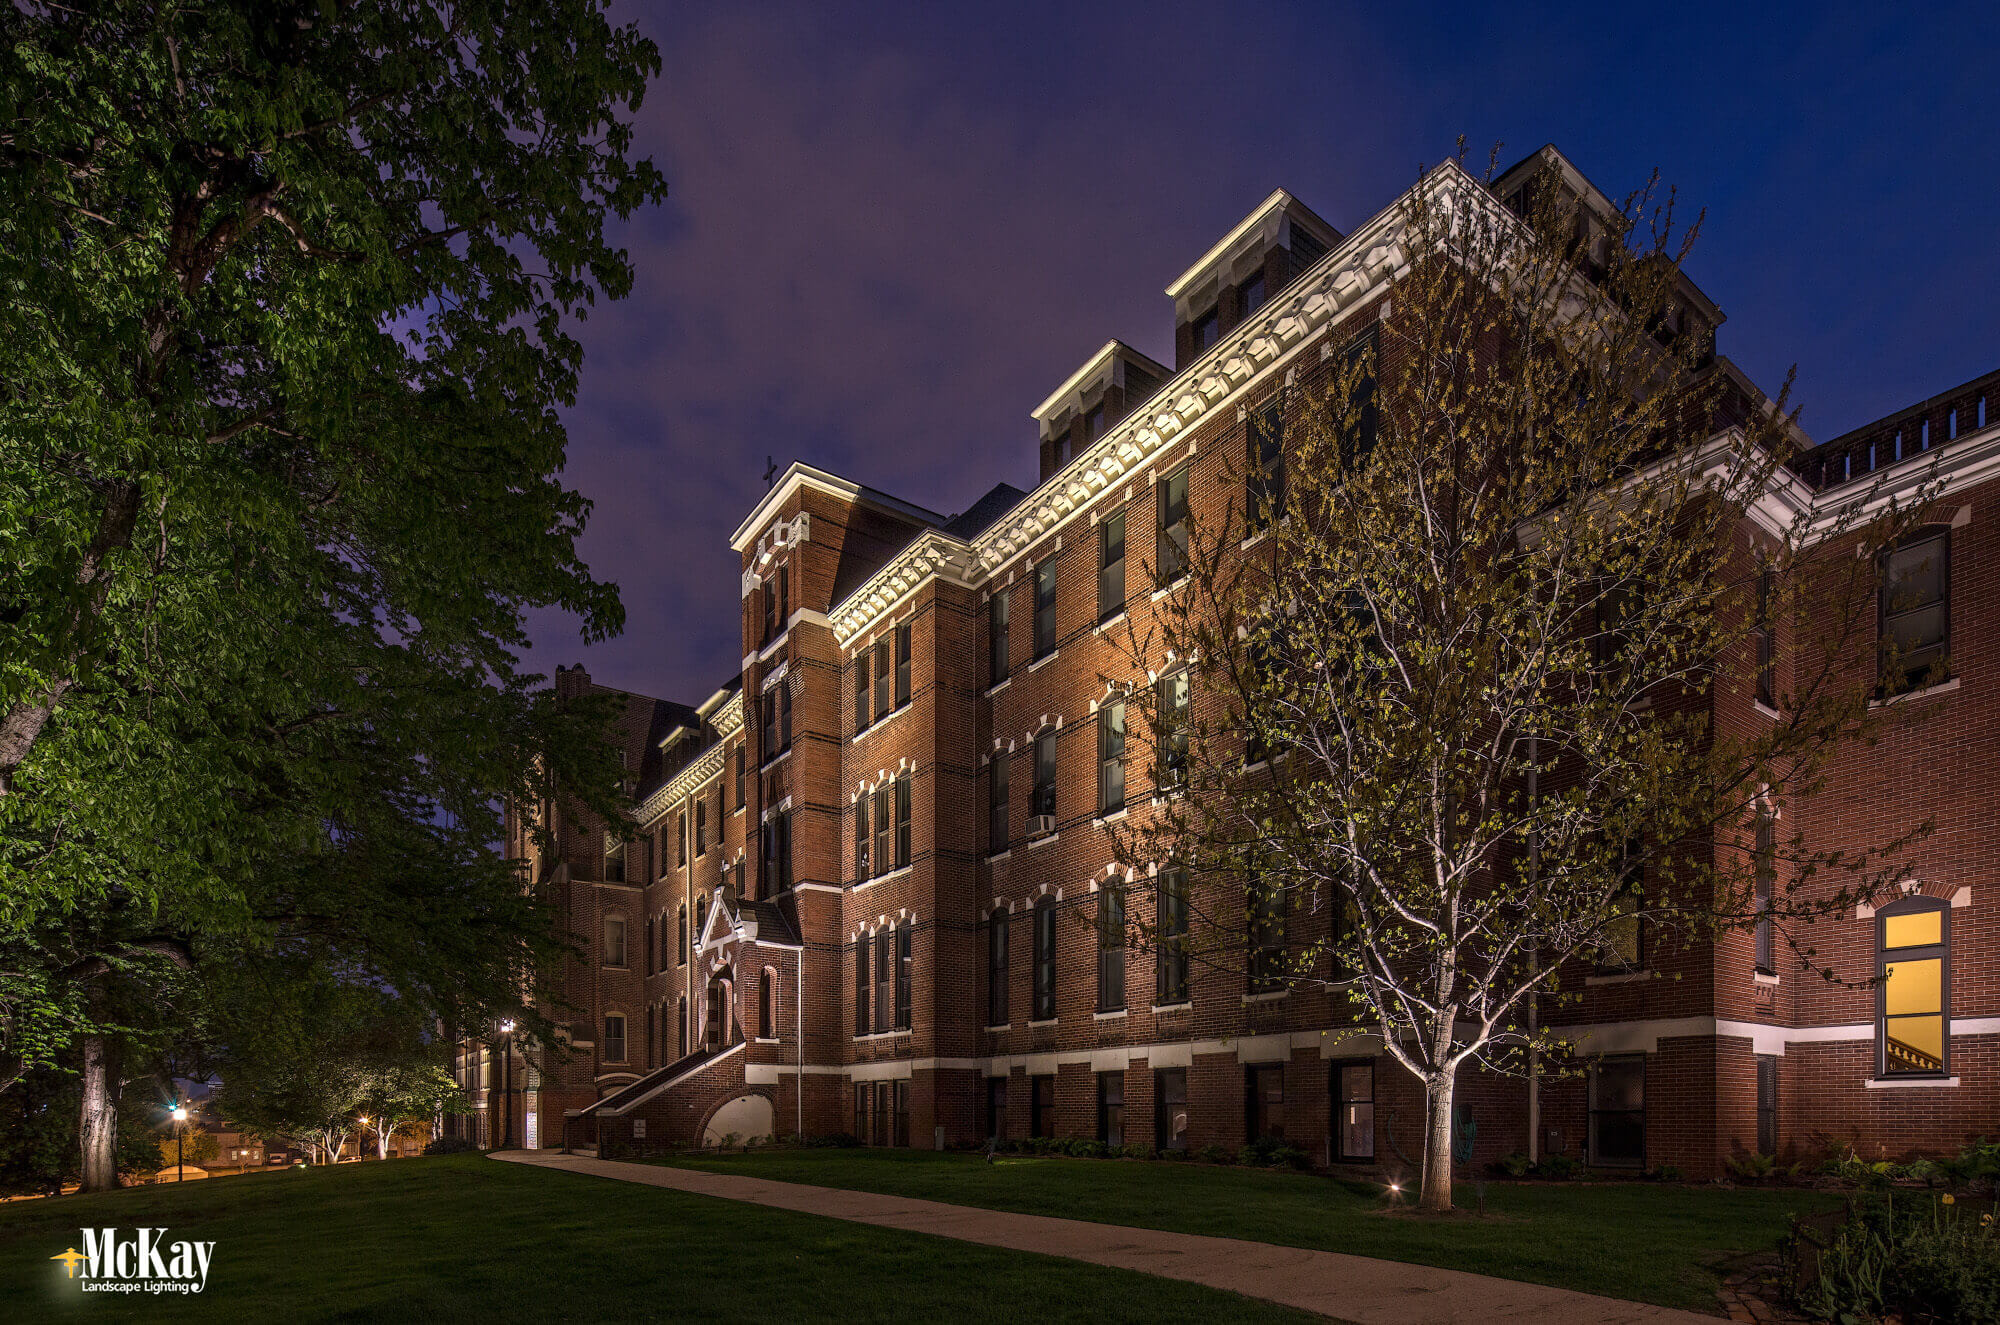 The exterior lighting improvements helped the school lower its overall energy consumption. Learn more about the commercial outdoor lighting design... | McKay Landscape Lighting Omaha Nebraska